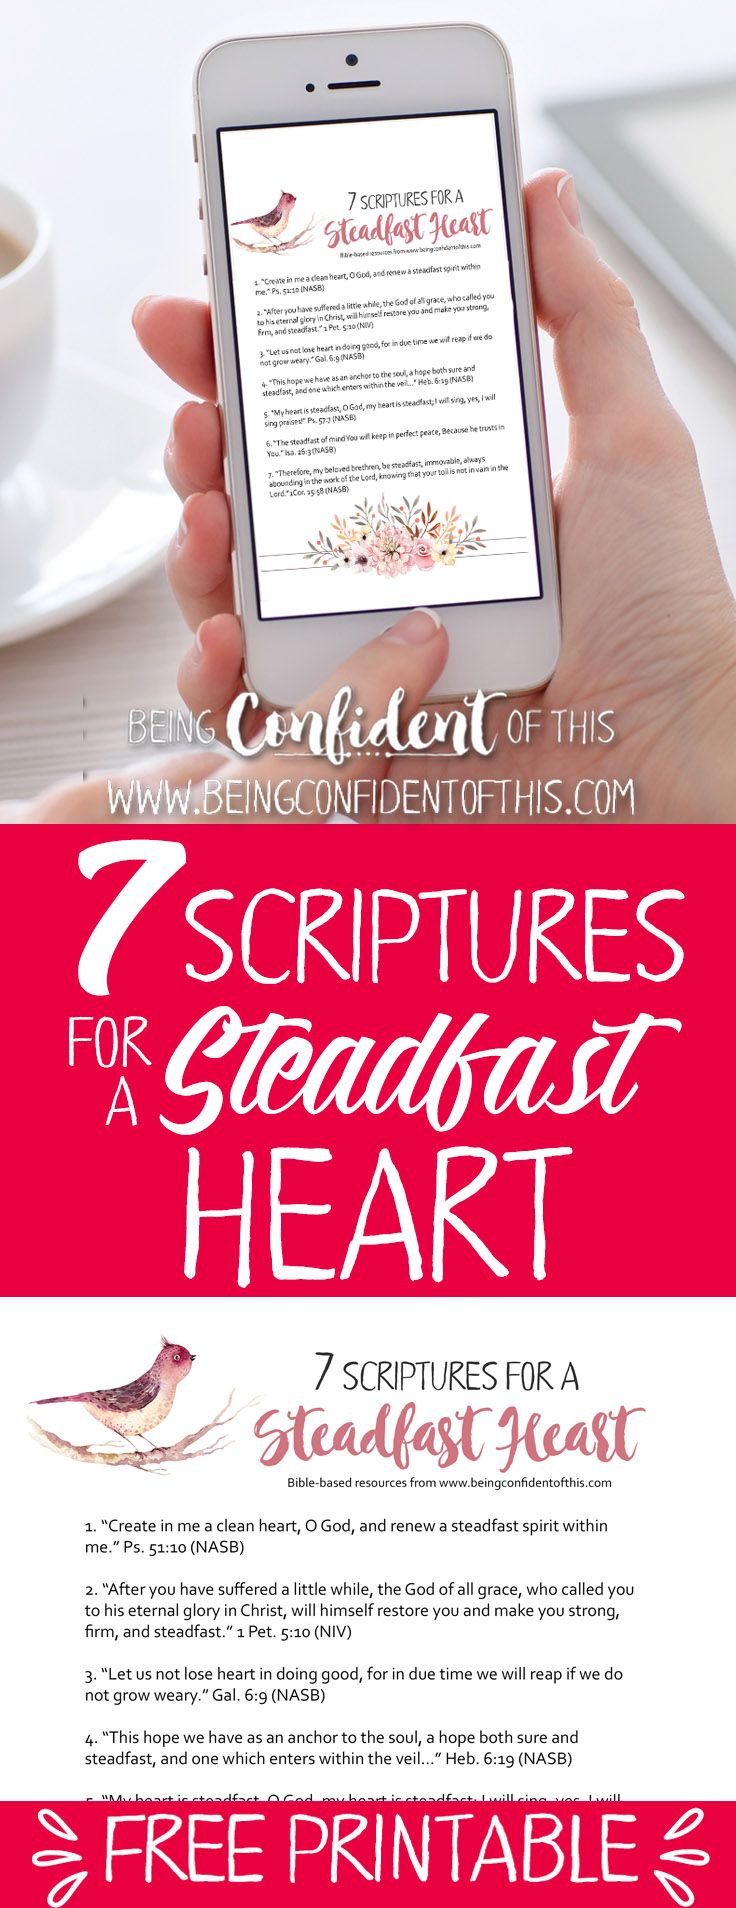 Print out this free Scripture reminder of how to be a steadfast woman! Use God's Holy Word to help strengthen your faith and give you confidence. Becoming a Steadfast Woman, christian women, bible verses for confidence, studying the bible, faith, faith blog, christian mom, christian wife, free printables, free faith-based resources #Bibleverse #printable #steadfast